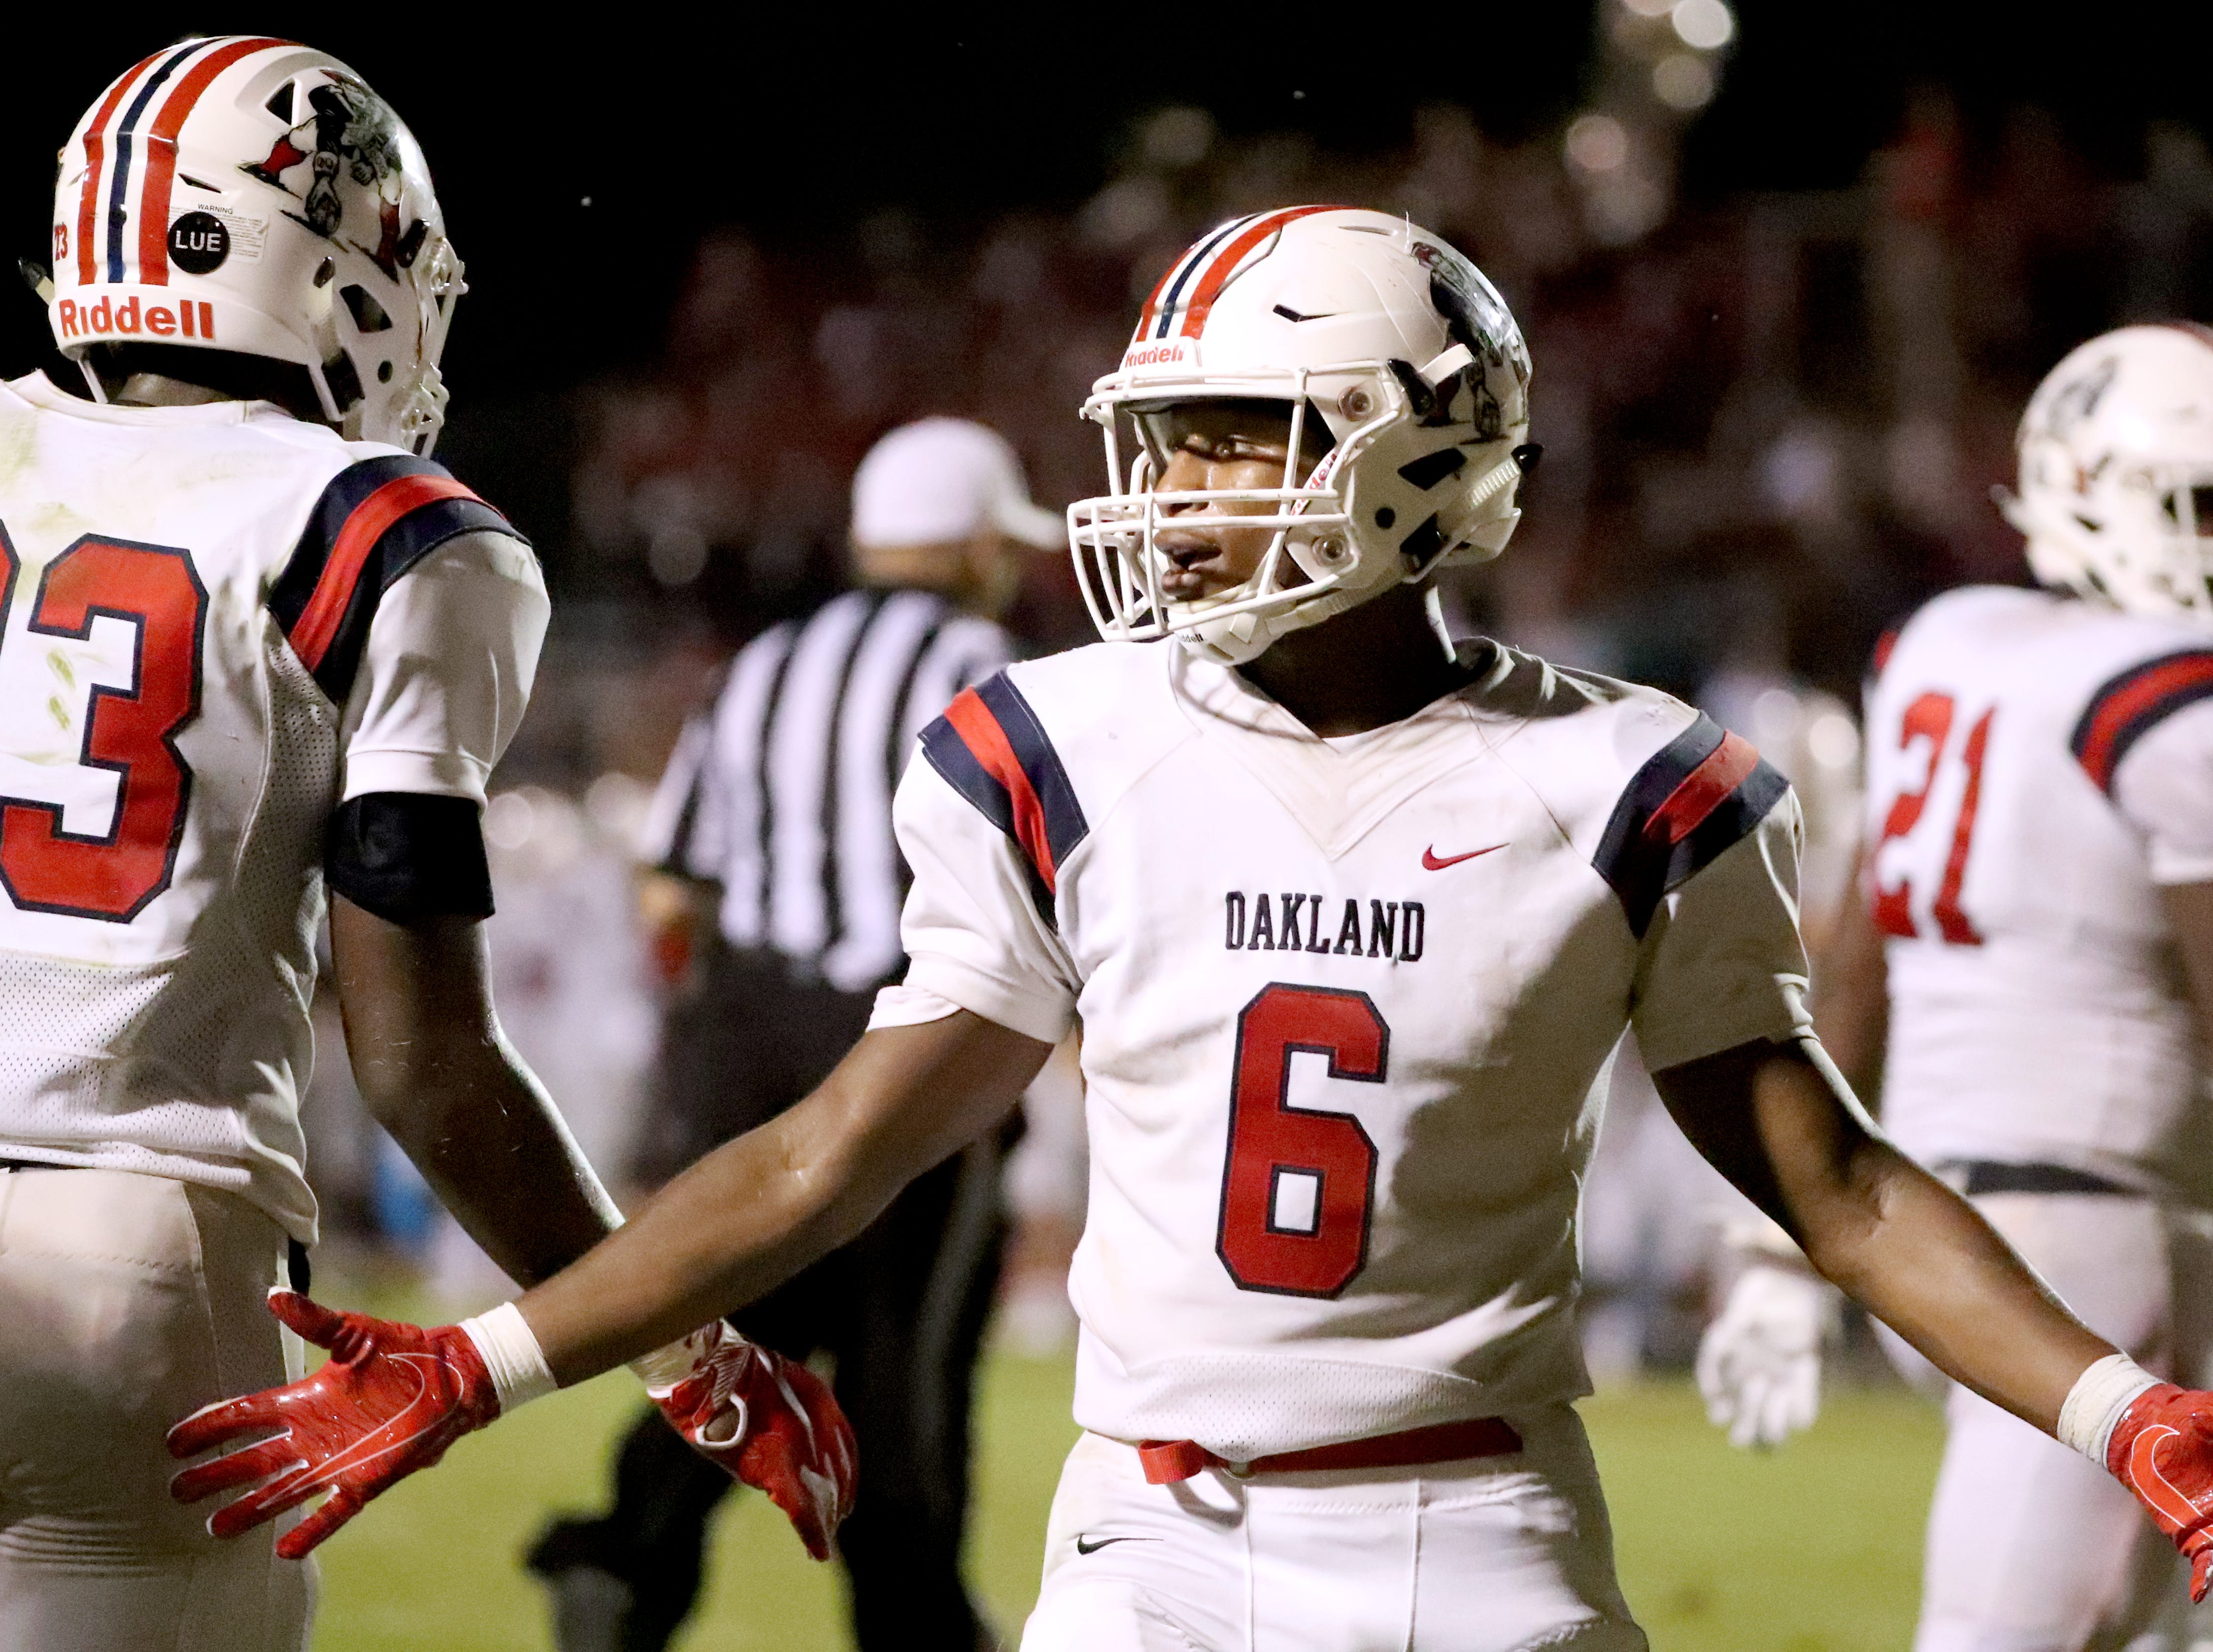 Oakland's Justin Jefferson (6) celebrates his touchdown with his team at Riverdale during the Battle of the Boro on Friday, Sept. 14, 2018.